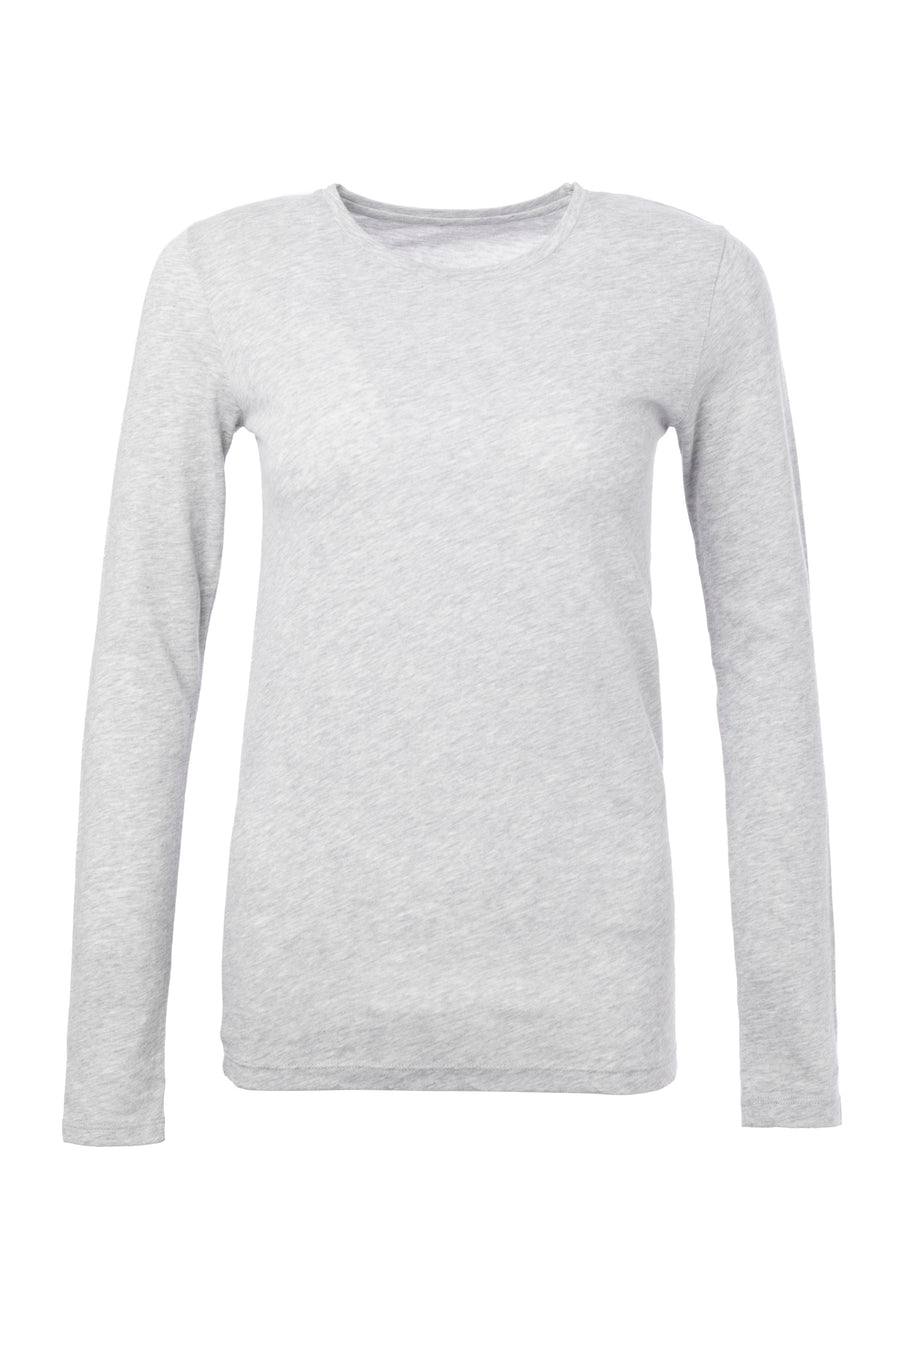 Cotton And Cashmere Blend Long Sleeved T-shirt Brume-Chine